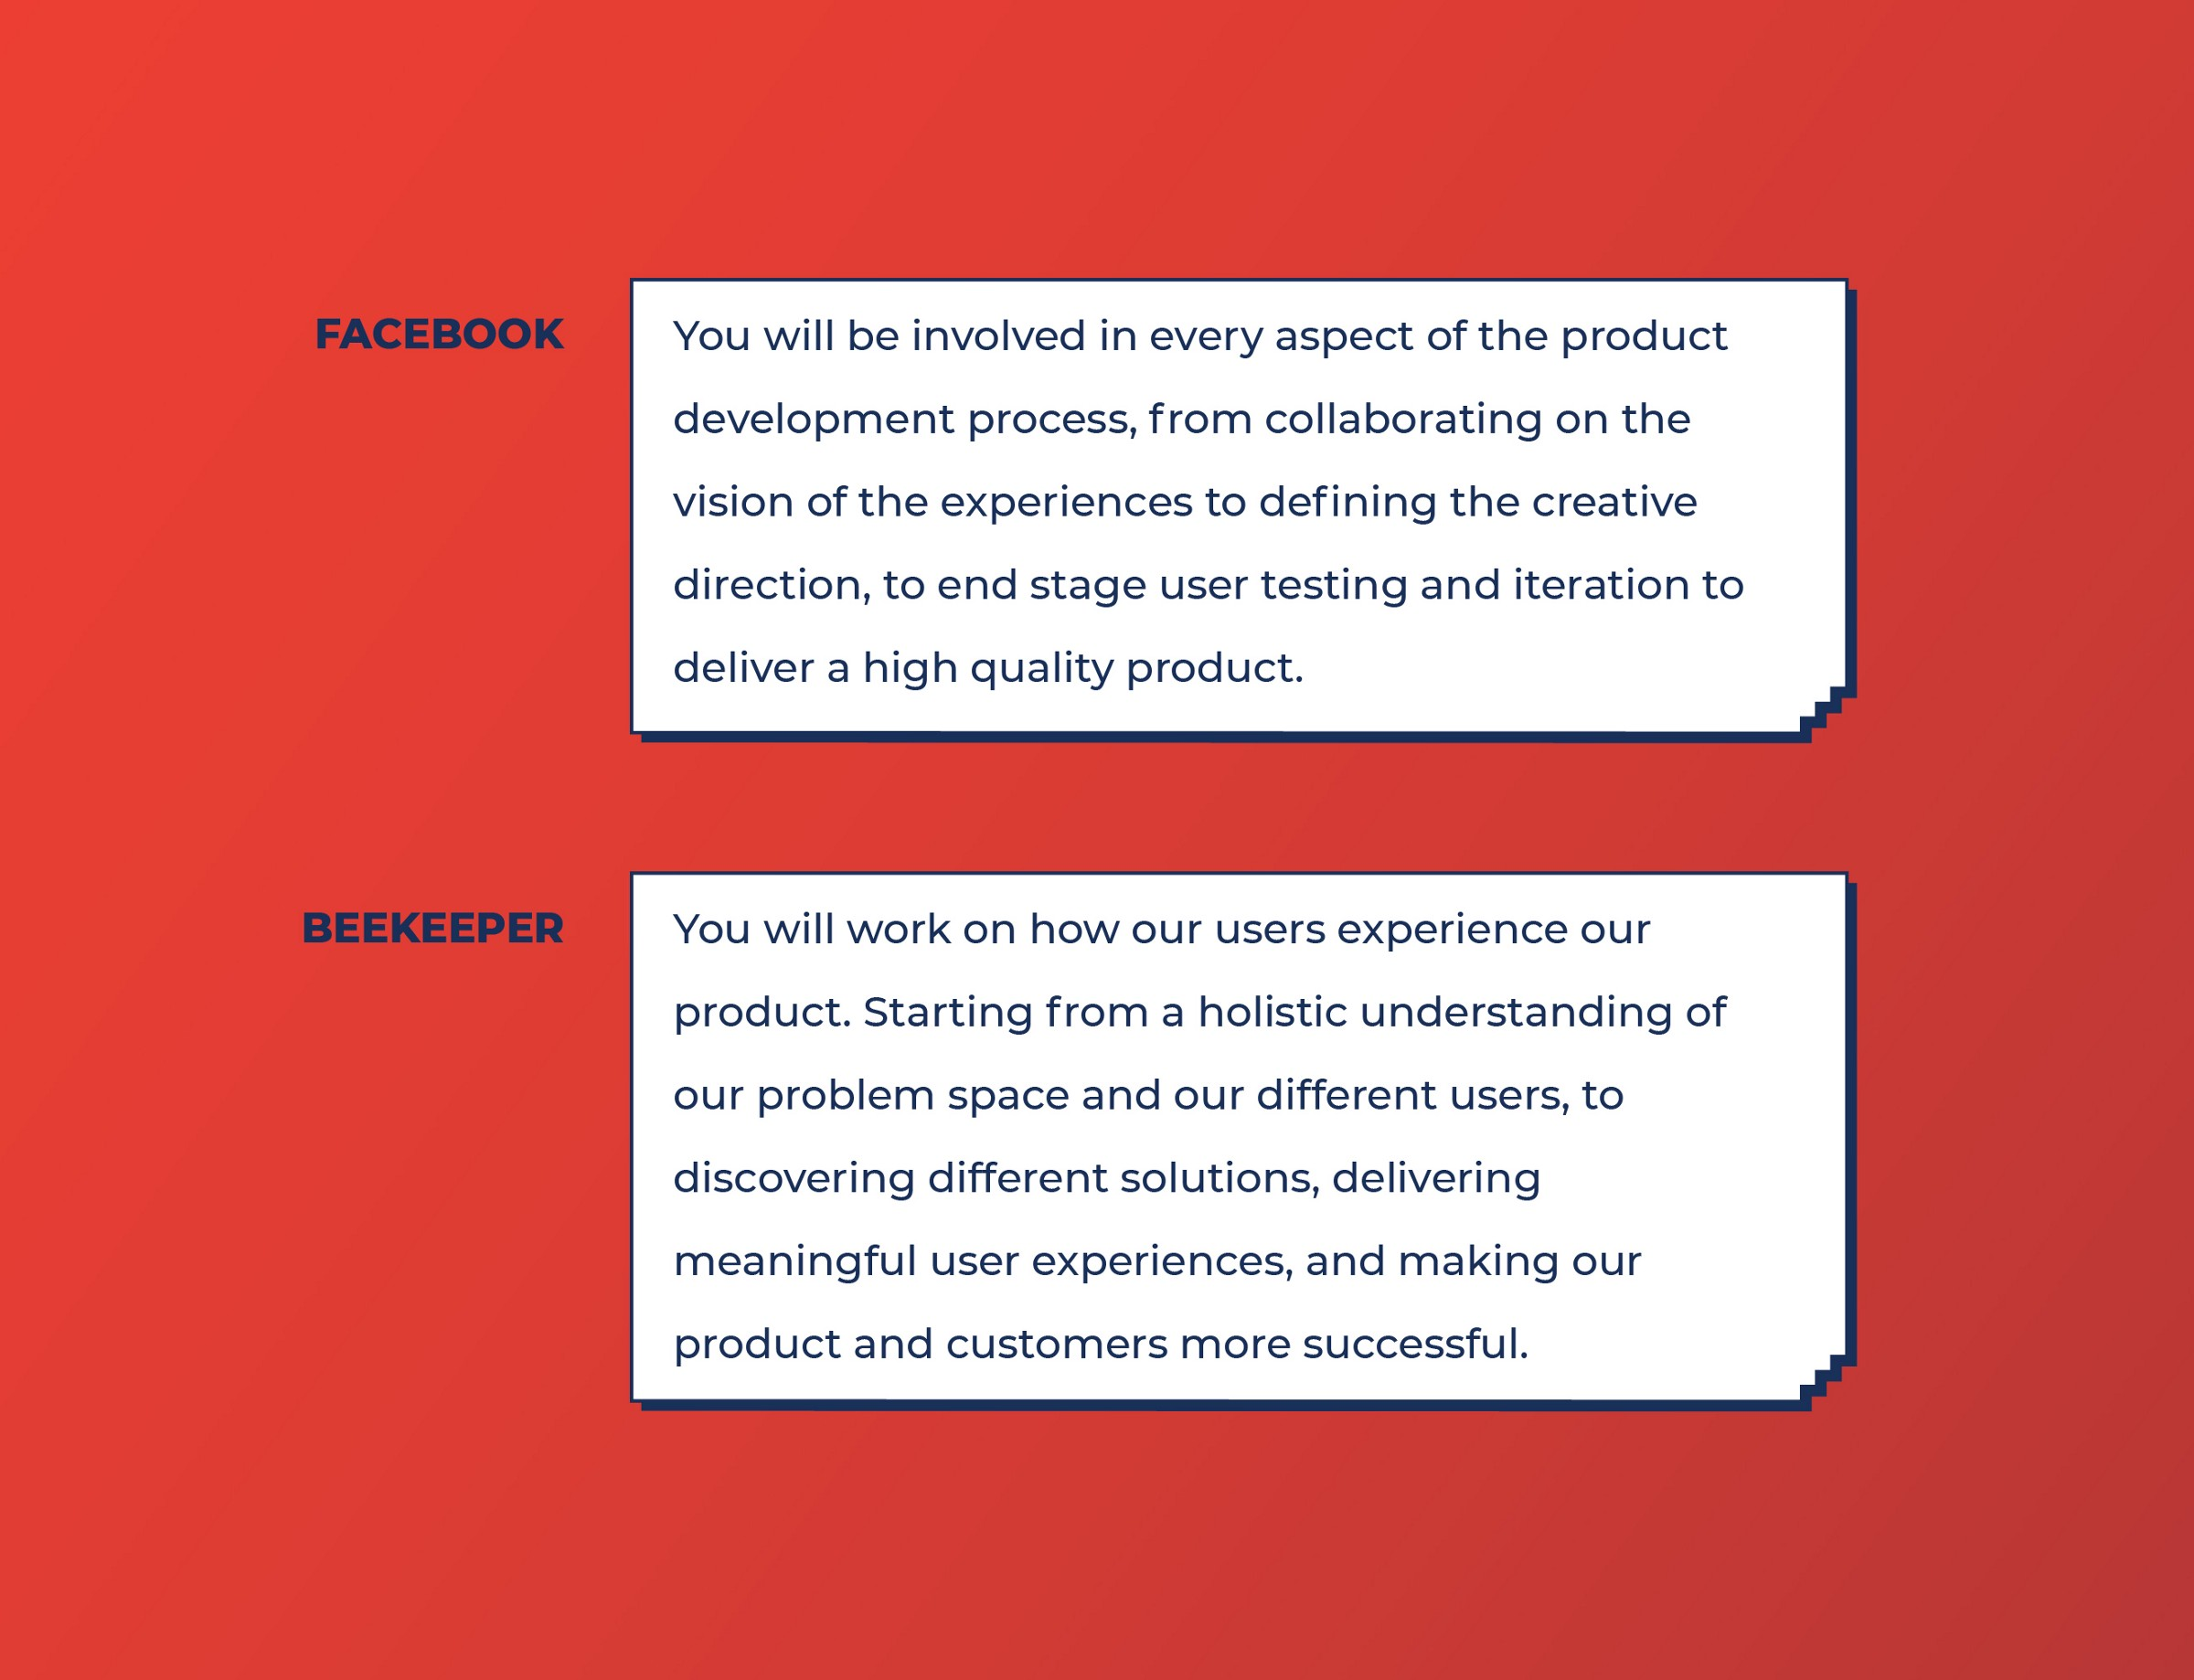 Facebook and Beekeeper requests for Product Designers